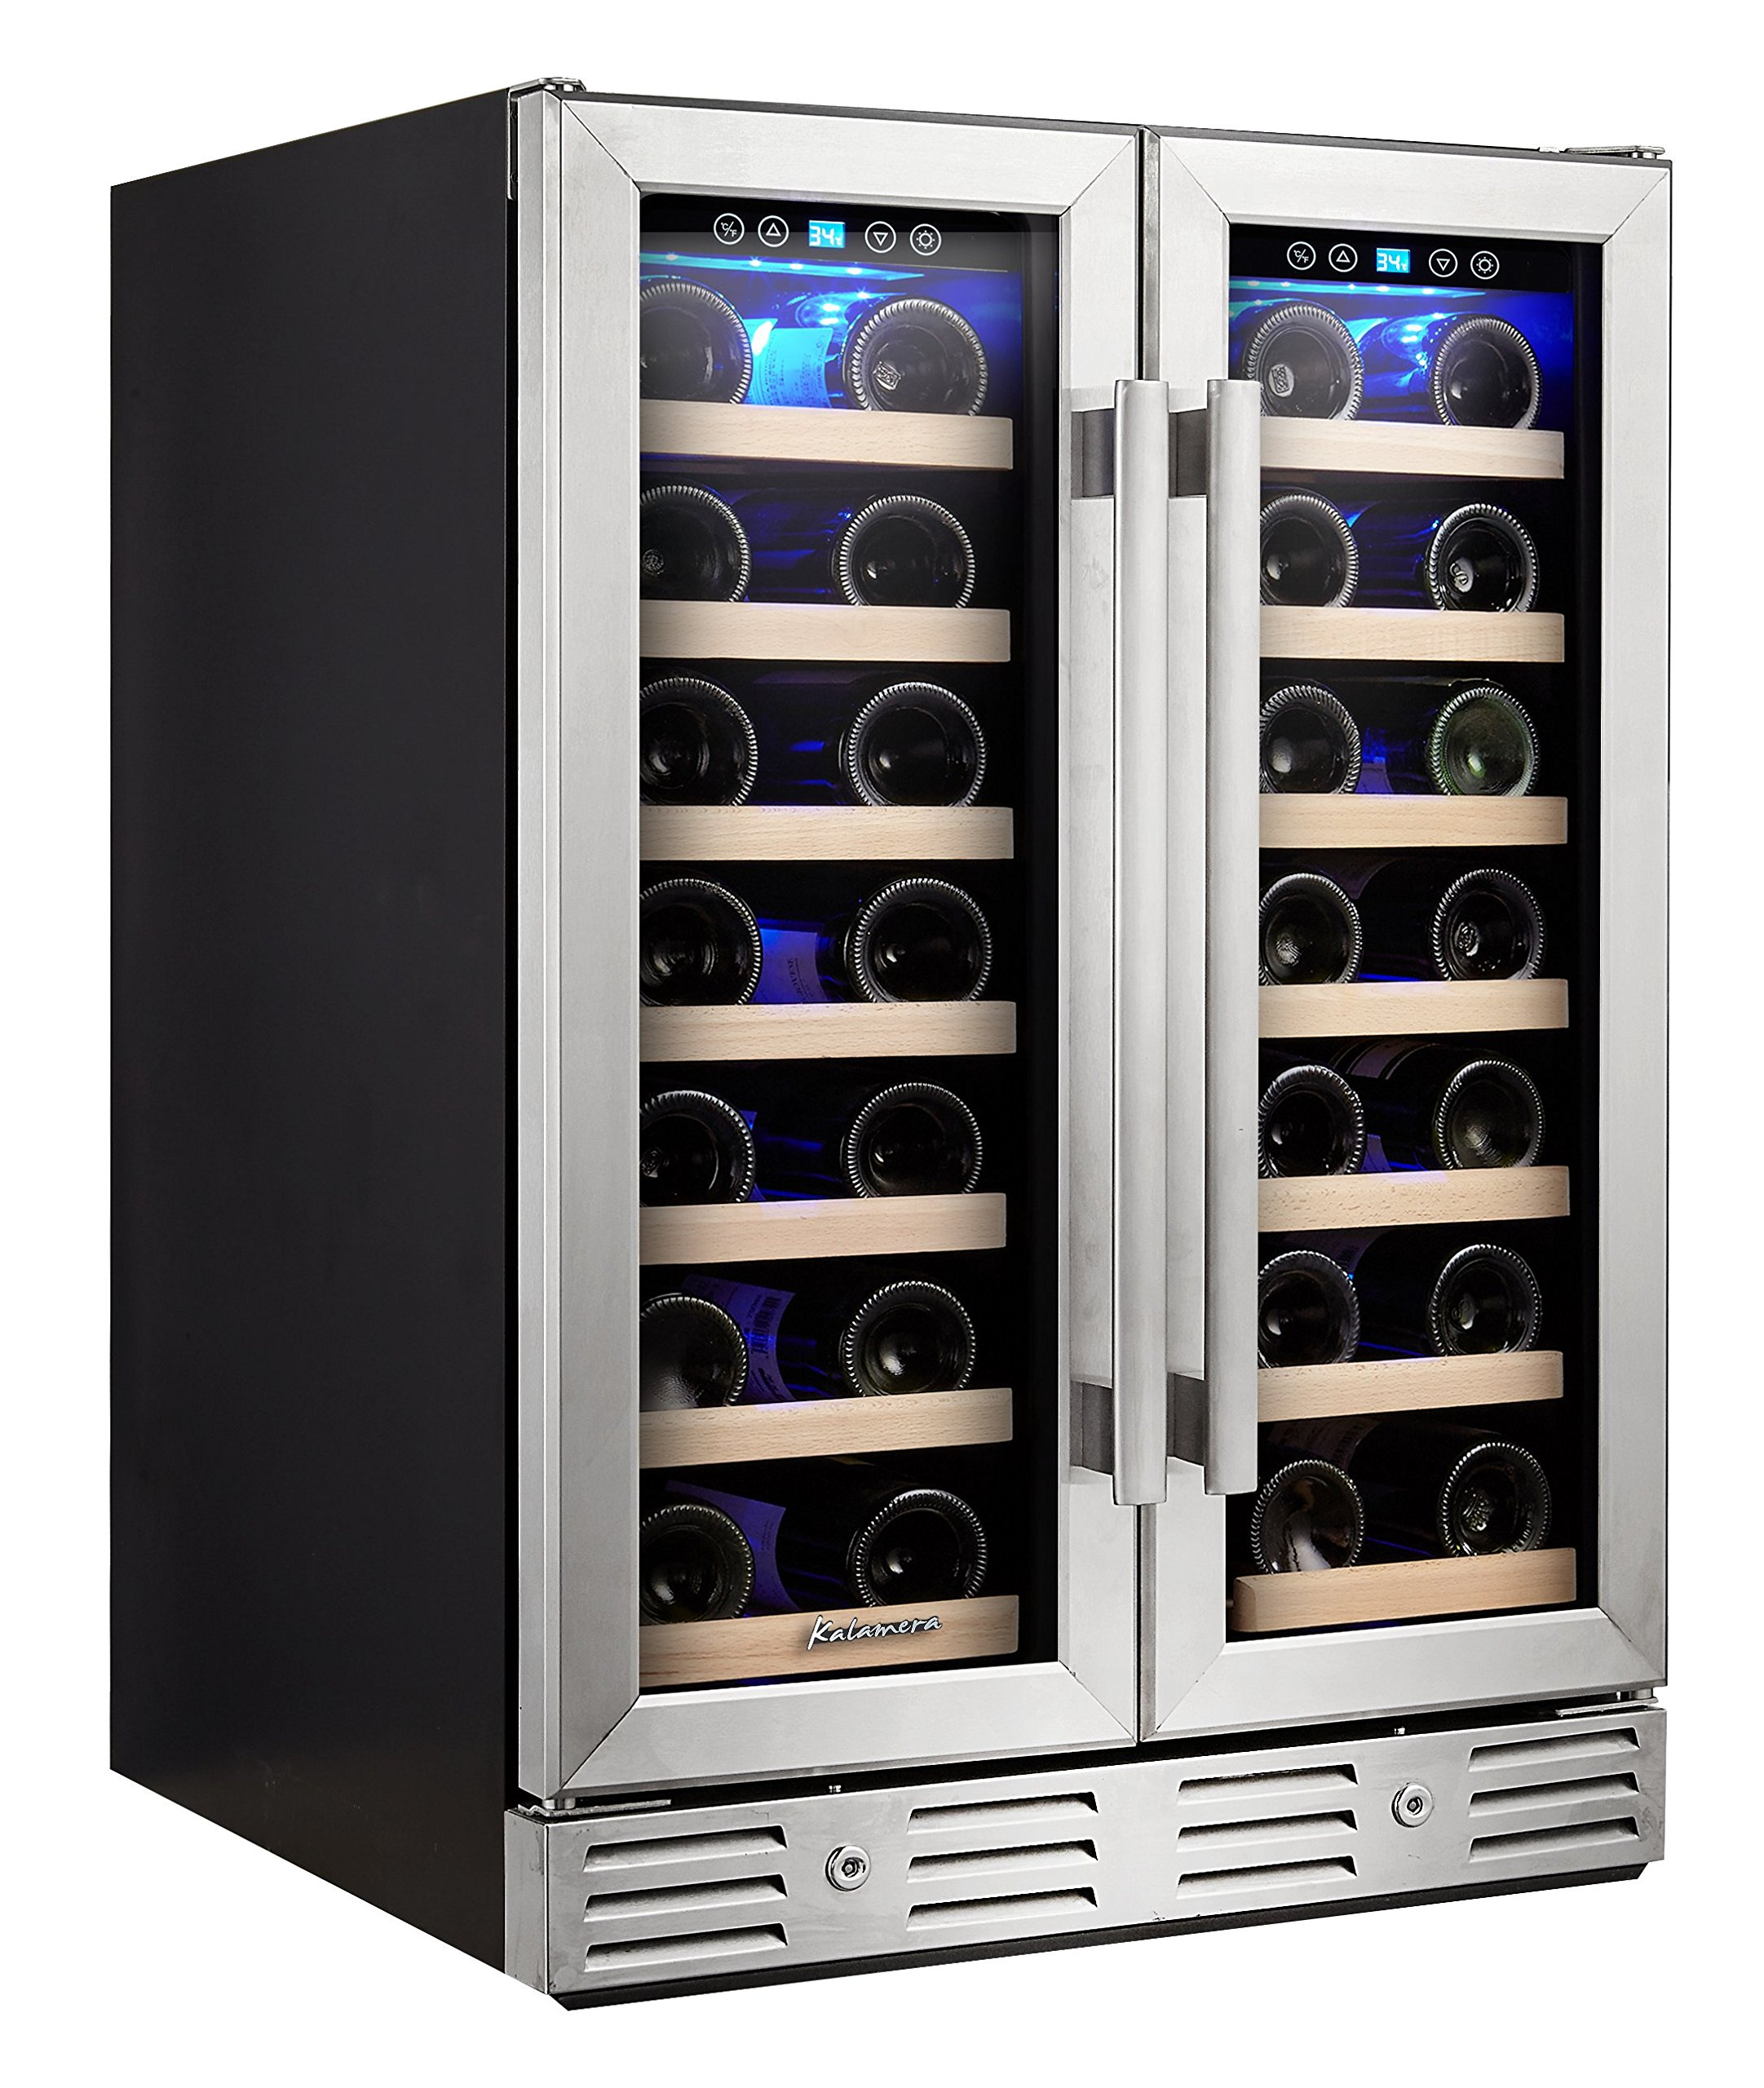 Kalamera 24'' Wine refrigerator 40 Bottle Dual Zone Built-in and Freestanding with Stainless Steel and Glass French-Door Style